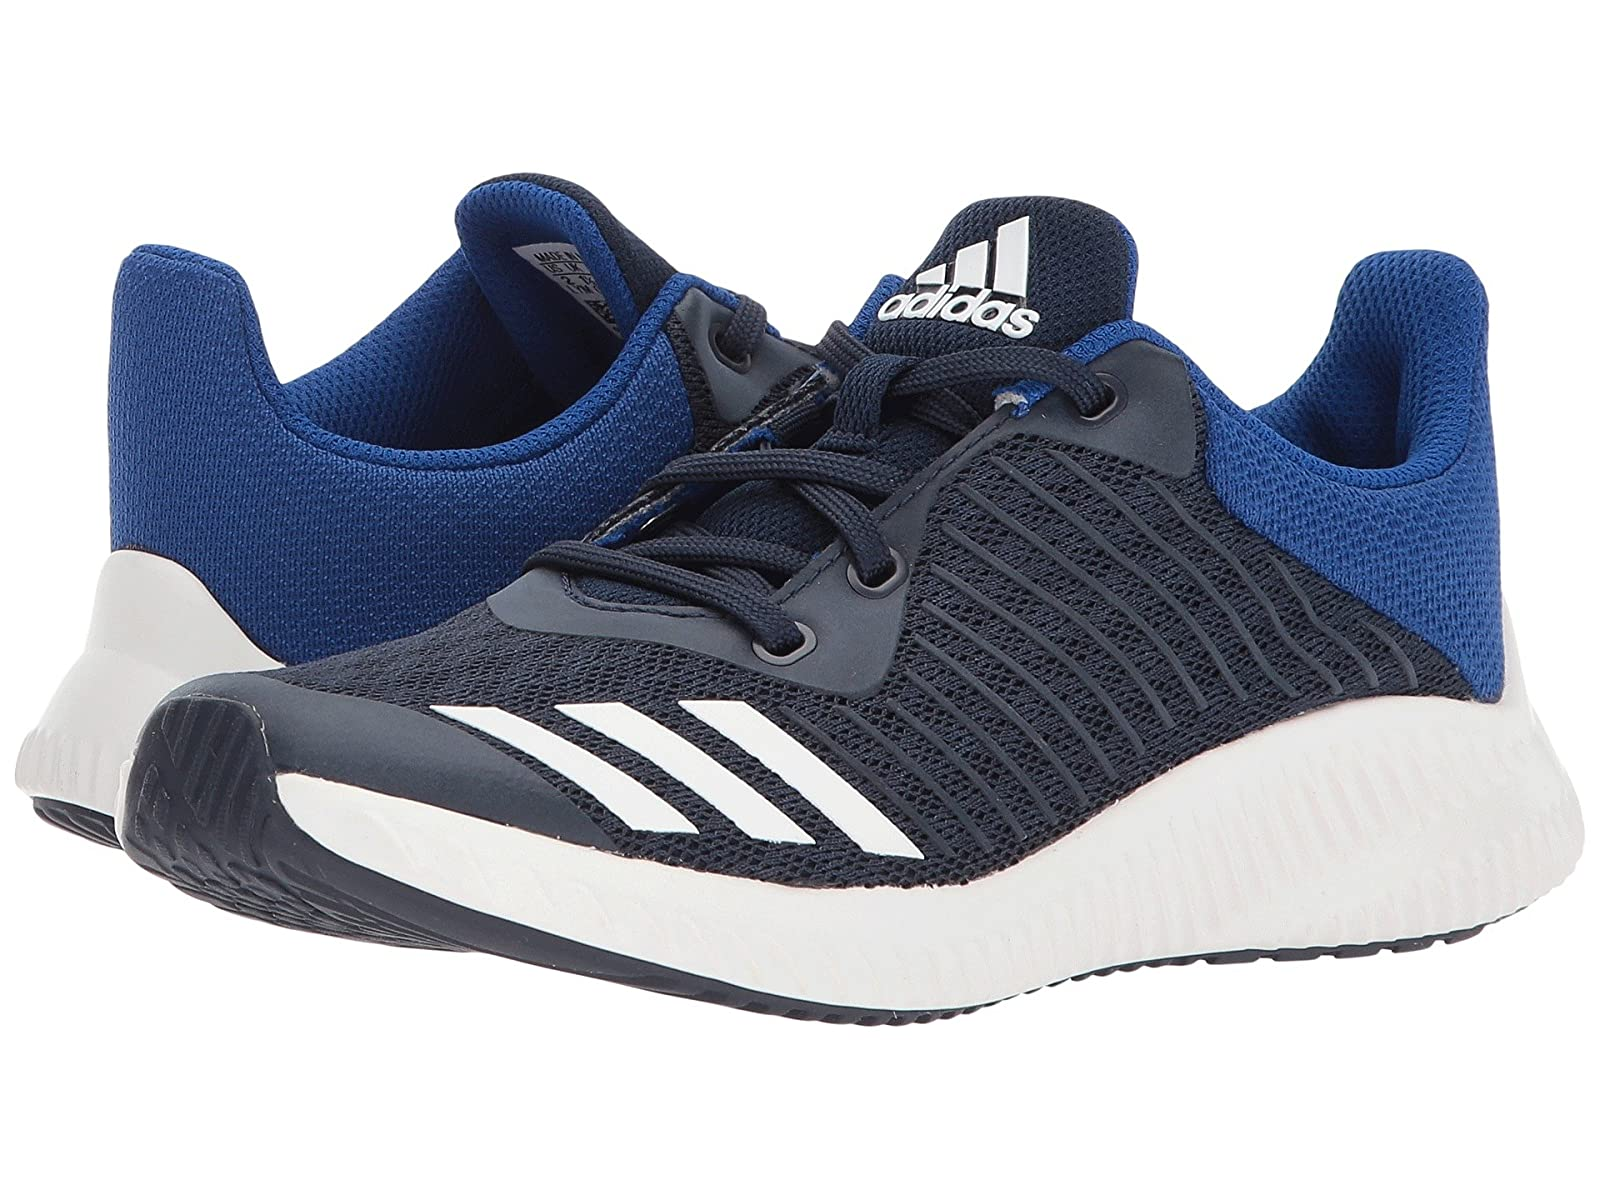 adidas Kids FortaRun (Little Kid/Big Kid)Stylish and characteristic shoes